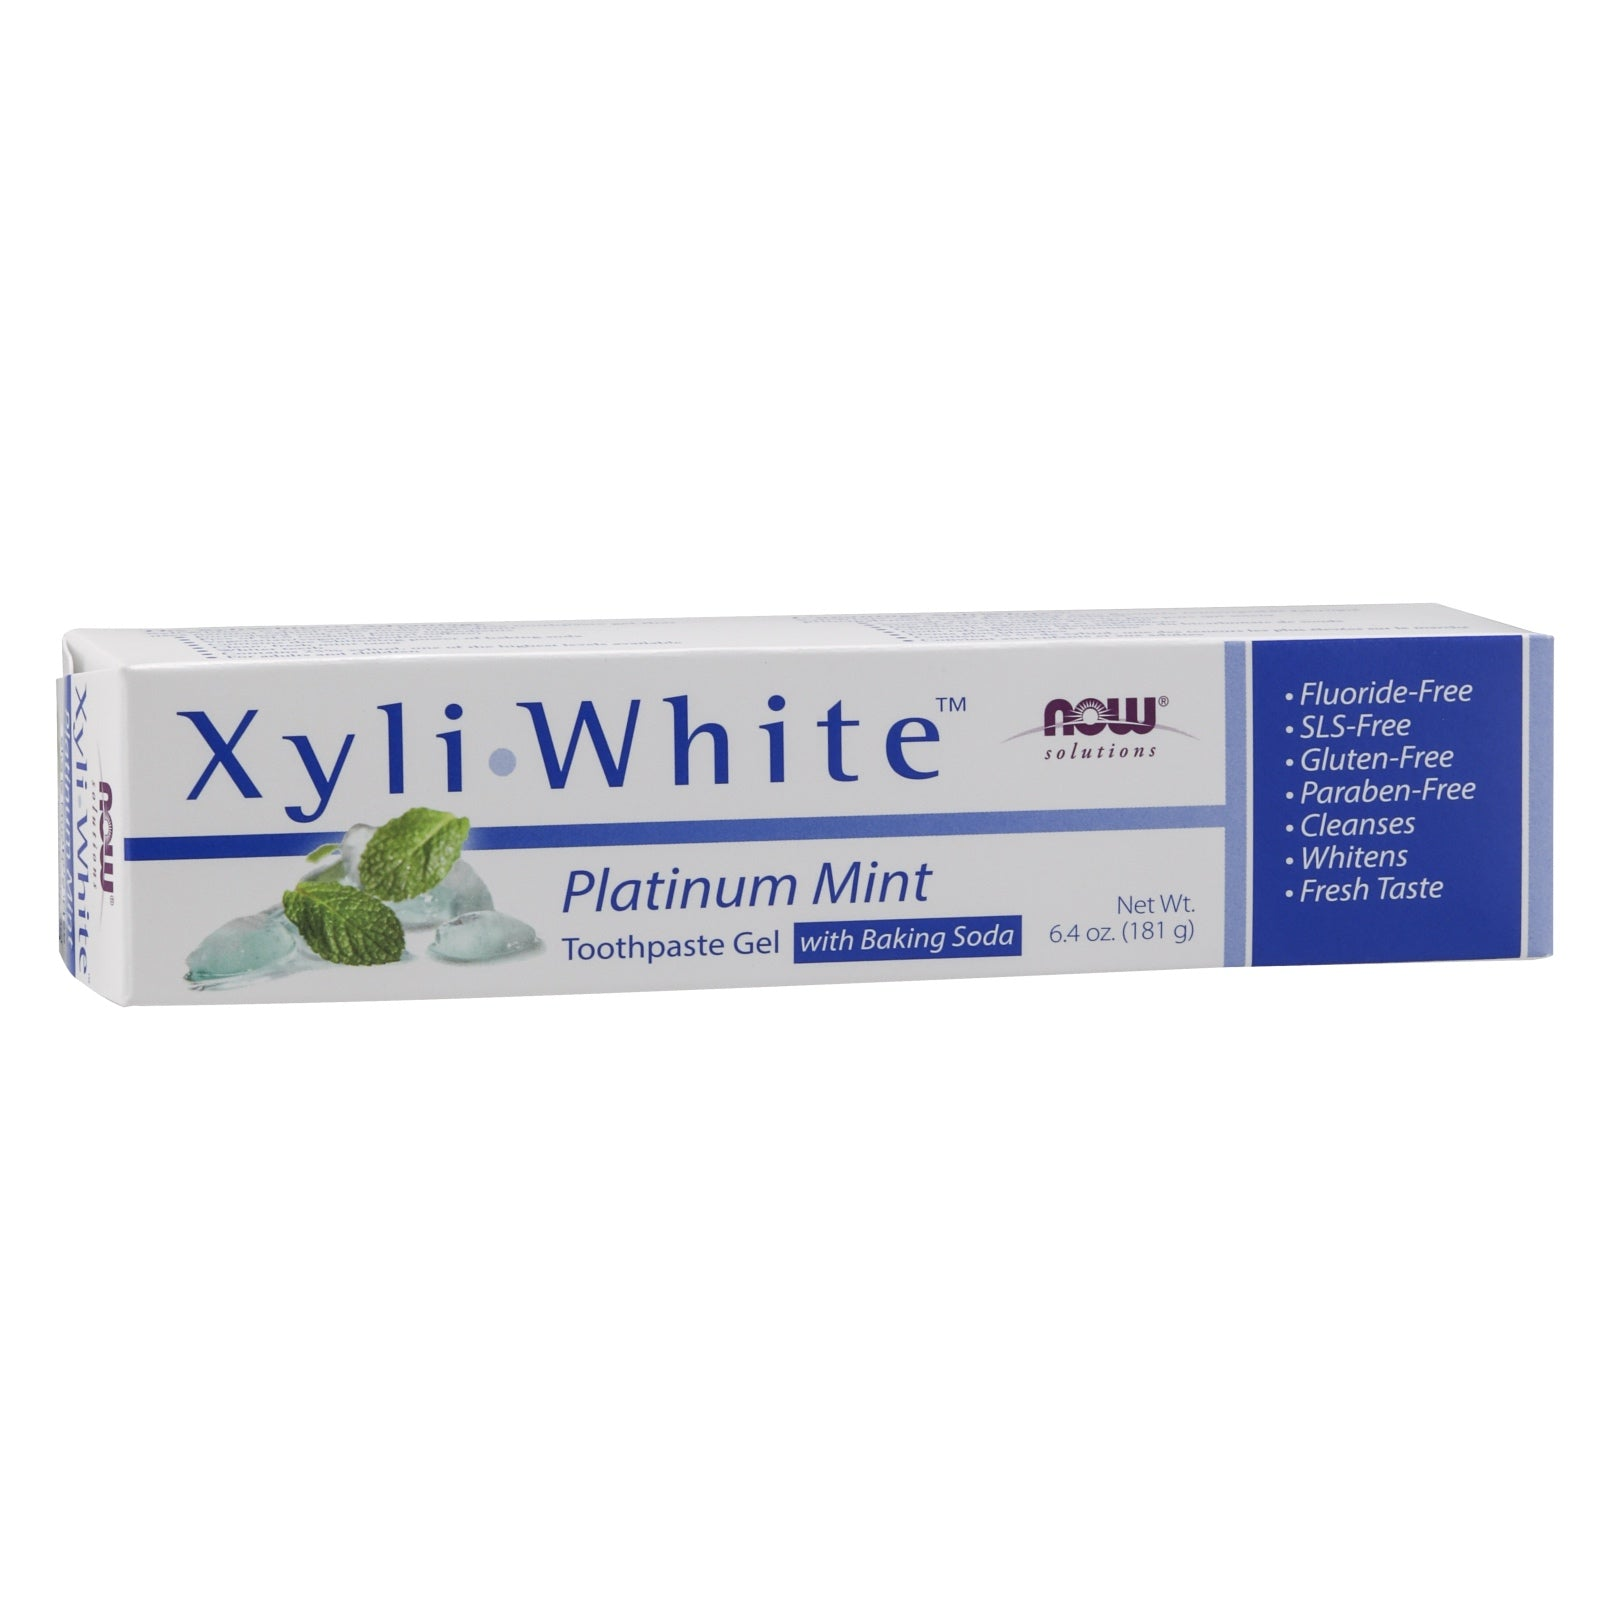 XyliWhite Platinum Mint Toothpaste Gel with Baking Soda, 6.4 oz.